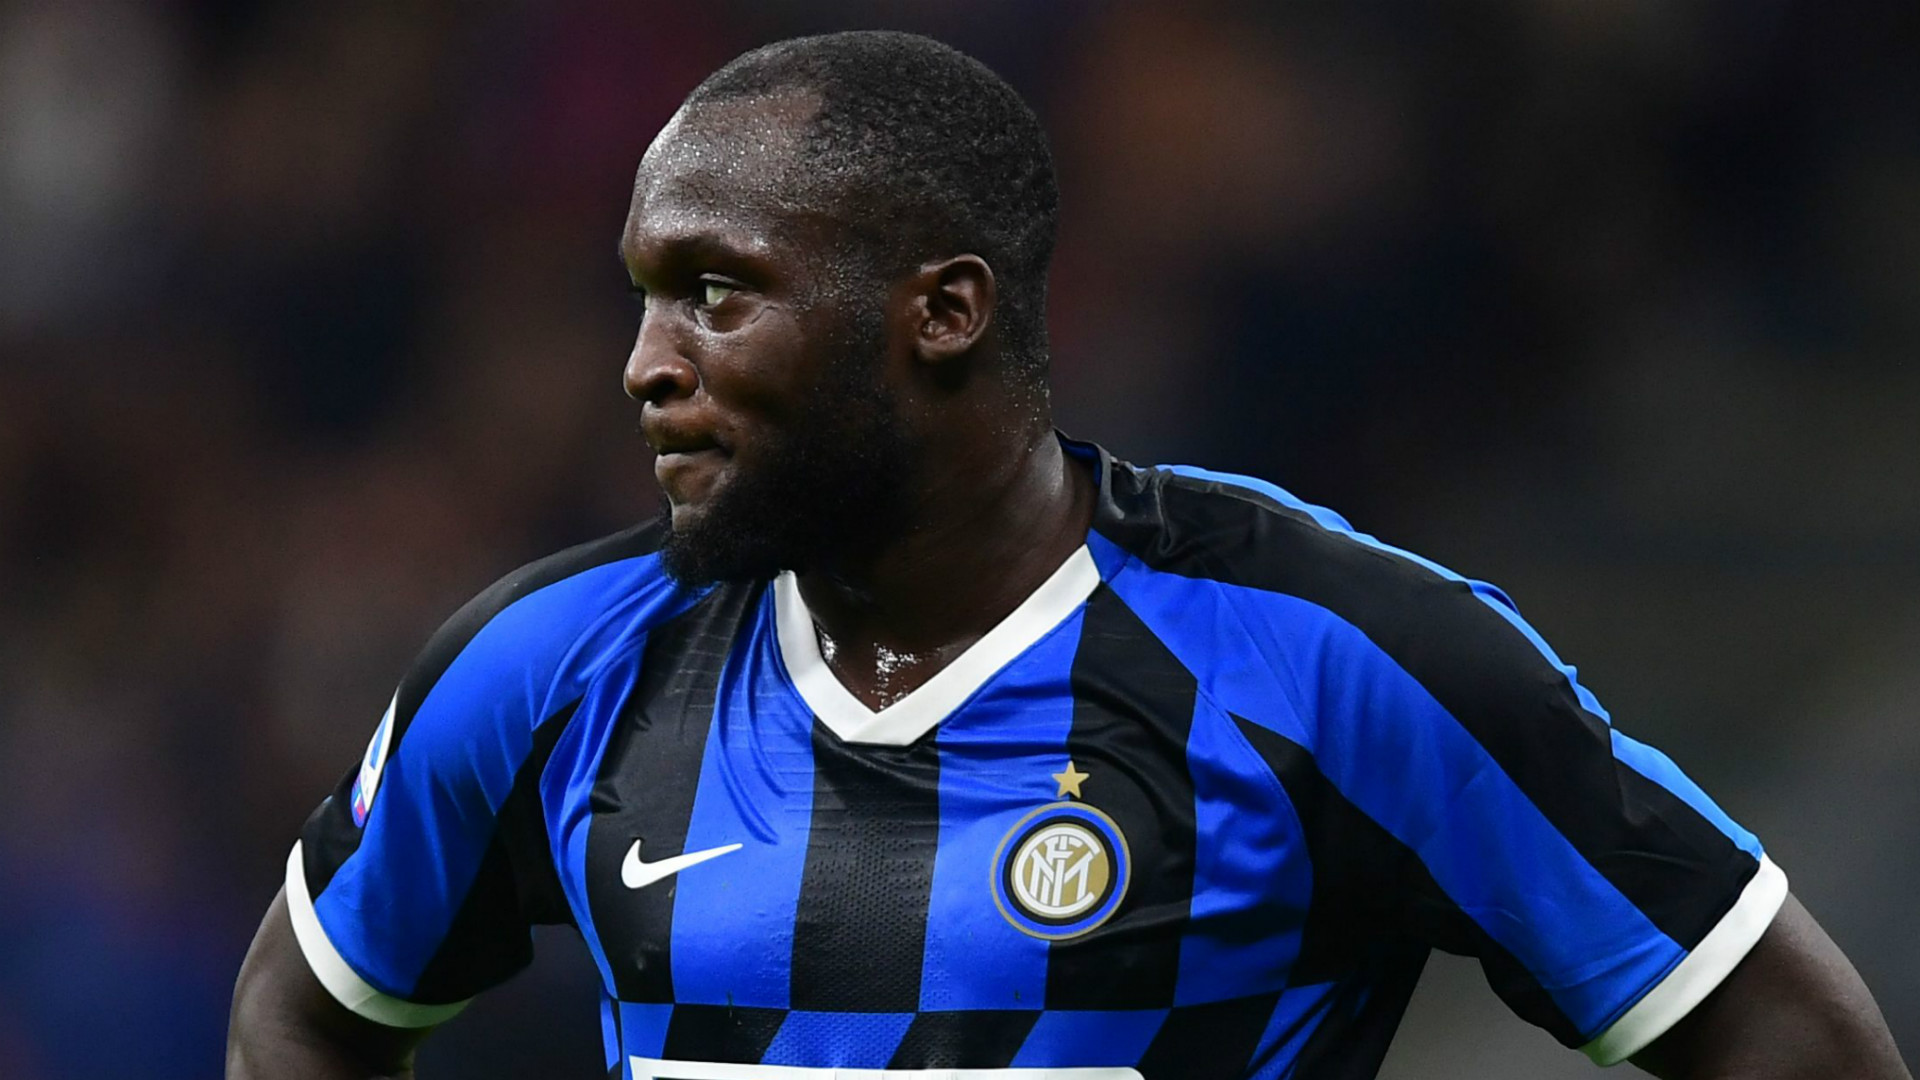 'Man Utd did not understand Lukaku's potential' – Inter benefiting from shock call, says Cordoba